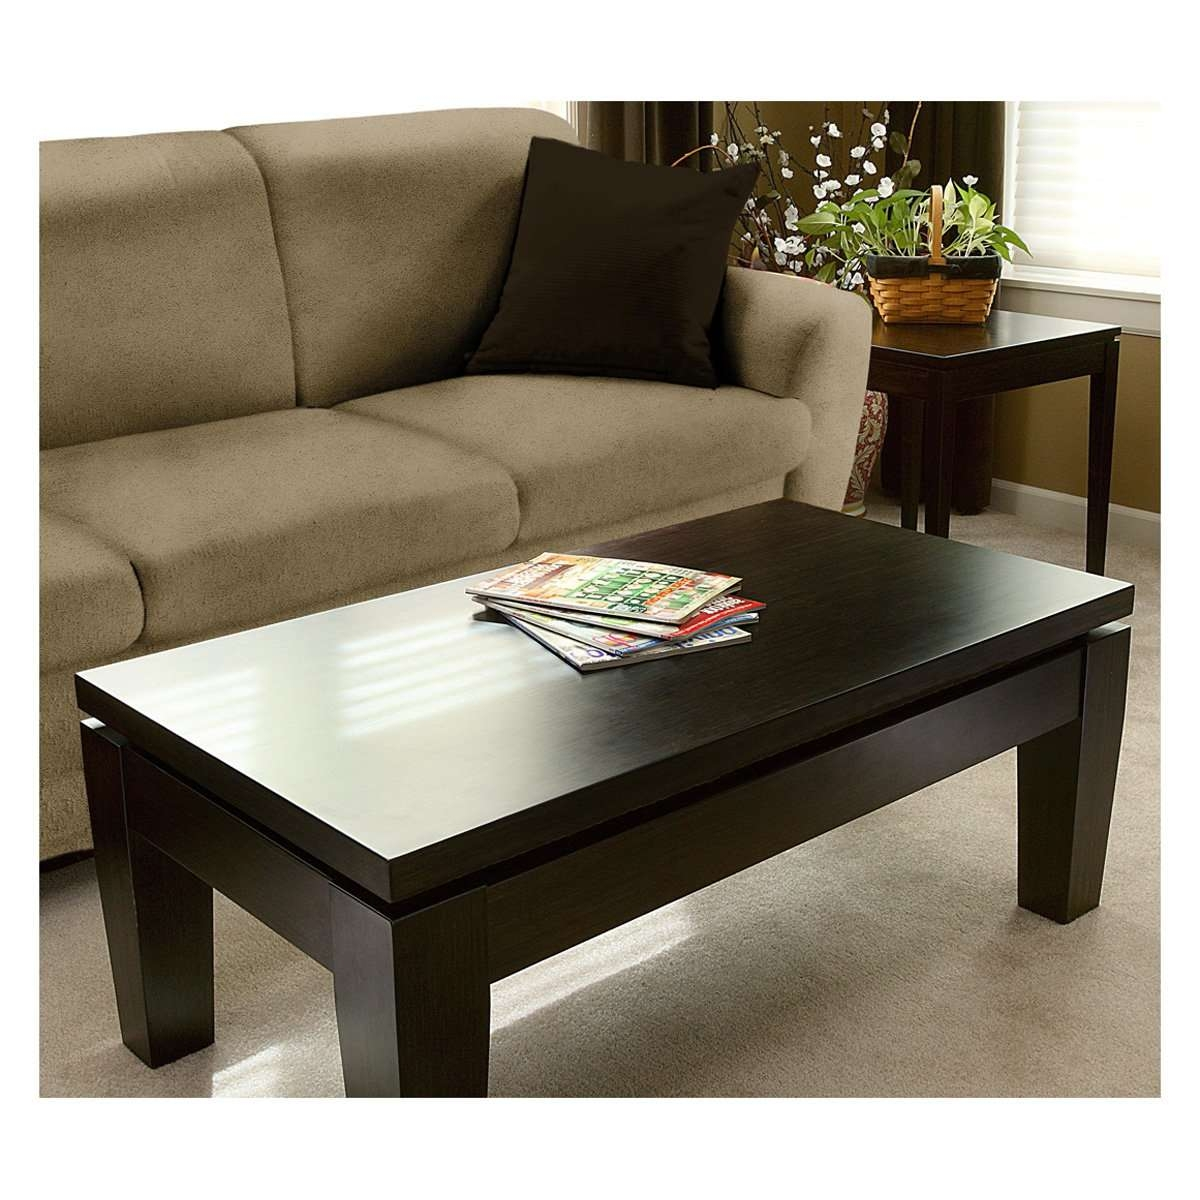 2018 Dark Brown Coffee Tables Intended For Dark Brown Wooden Modern Coffee Table Fit In The Classic Living (View 13 of 20)